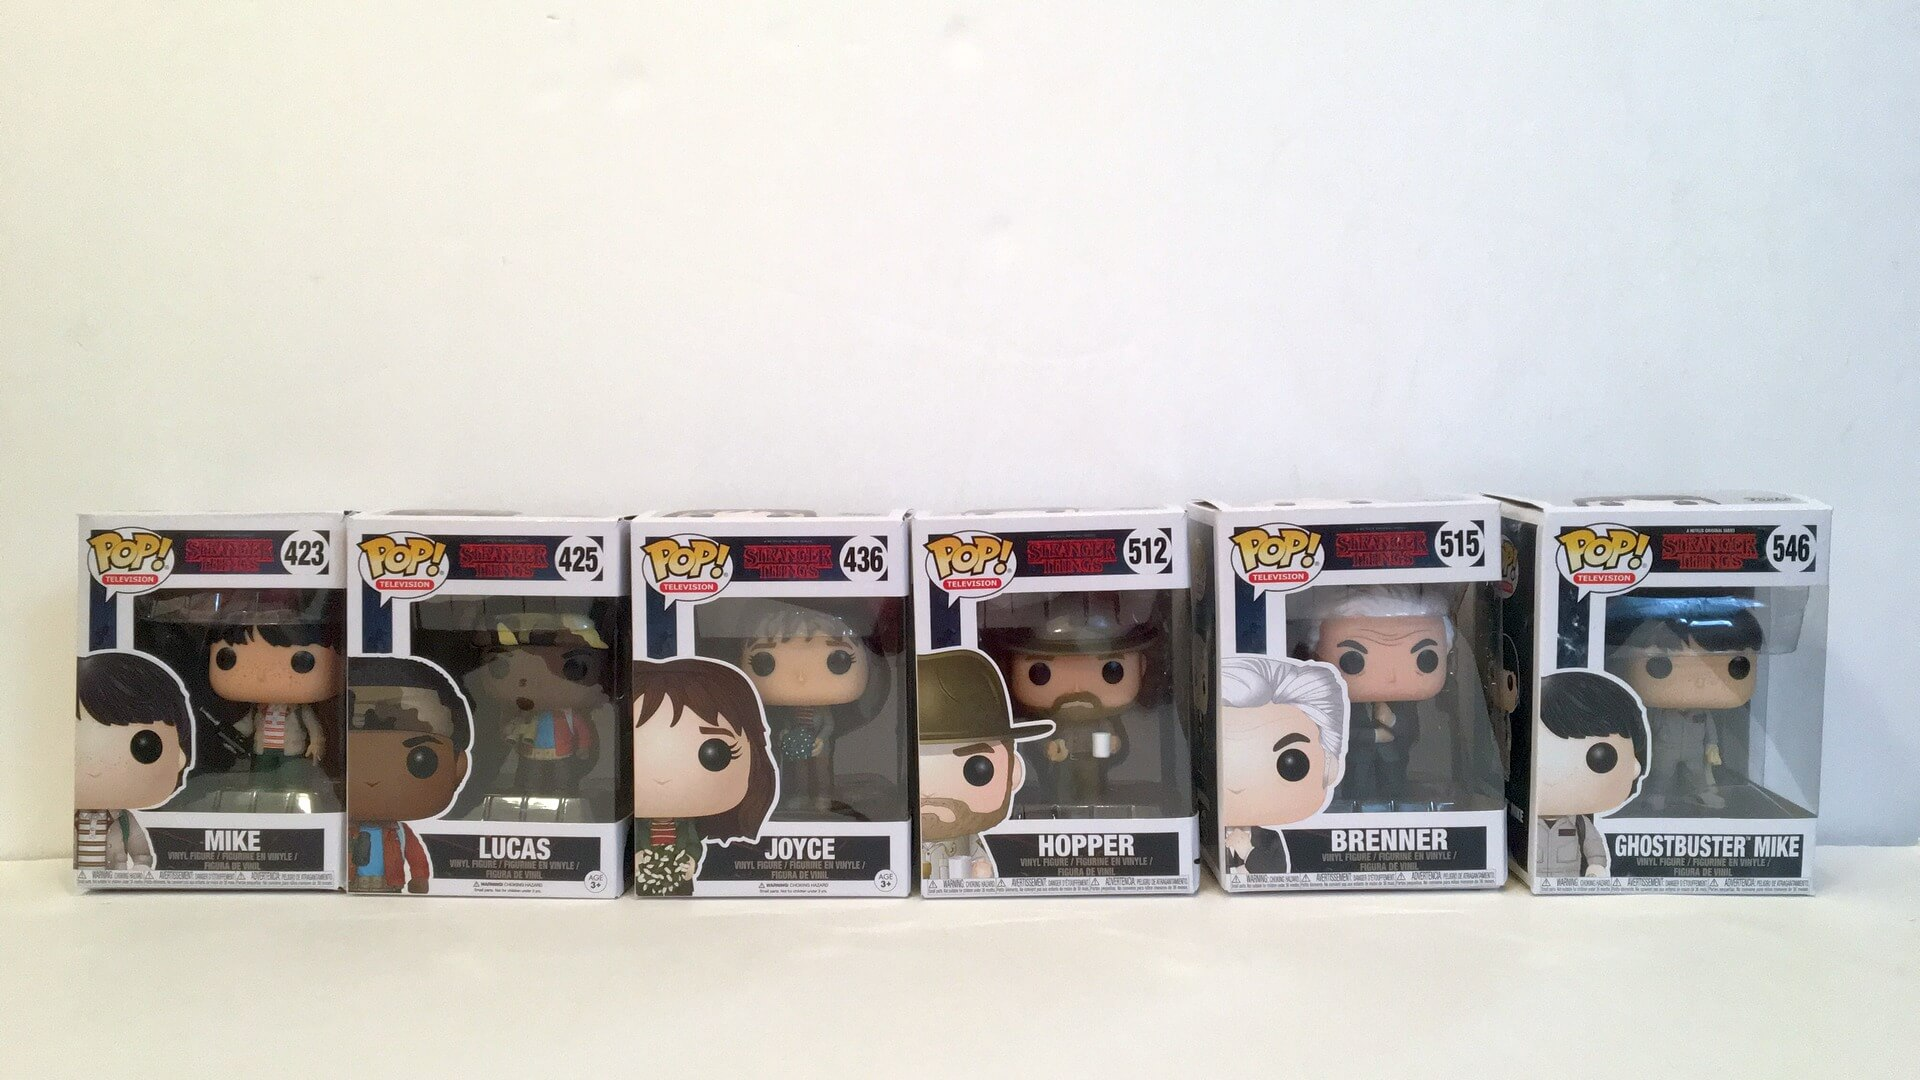 Funko.Com is a Source for Stranger Things Figures and More! - Review